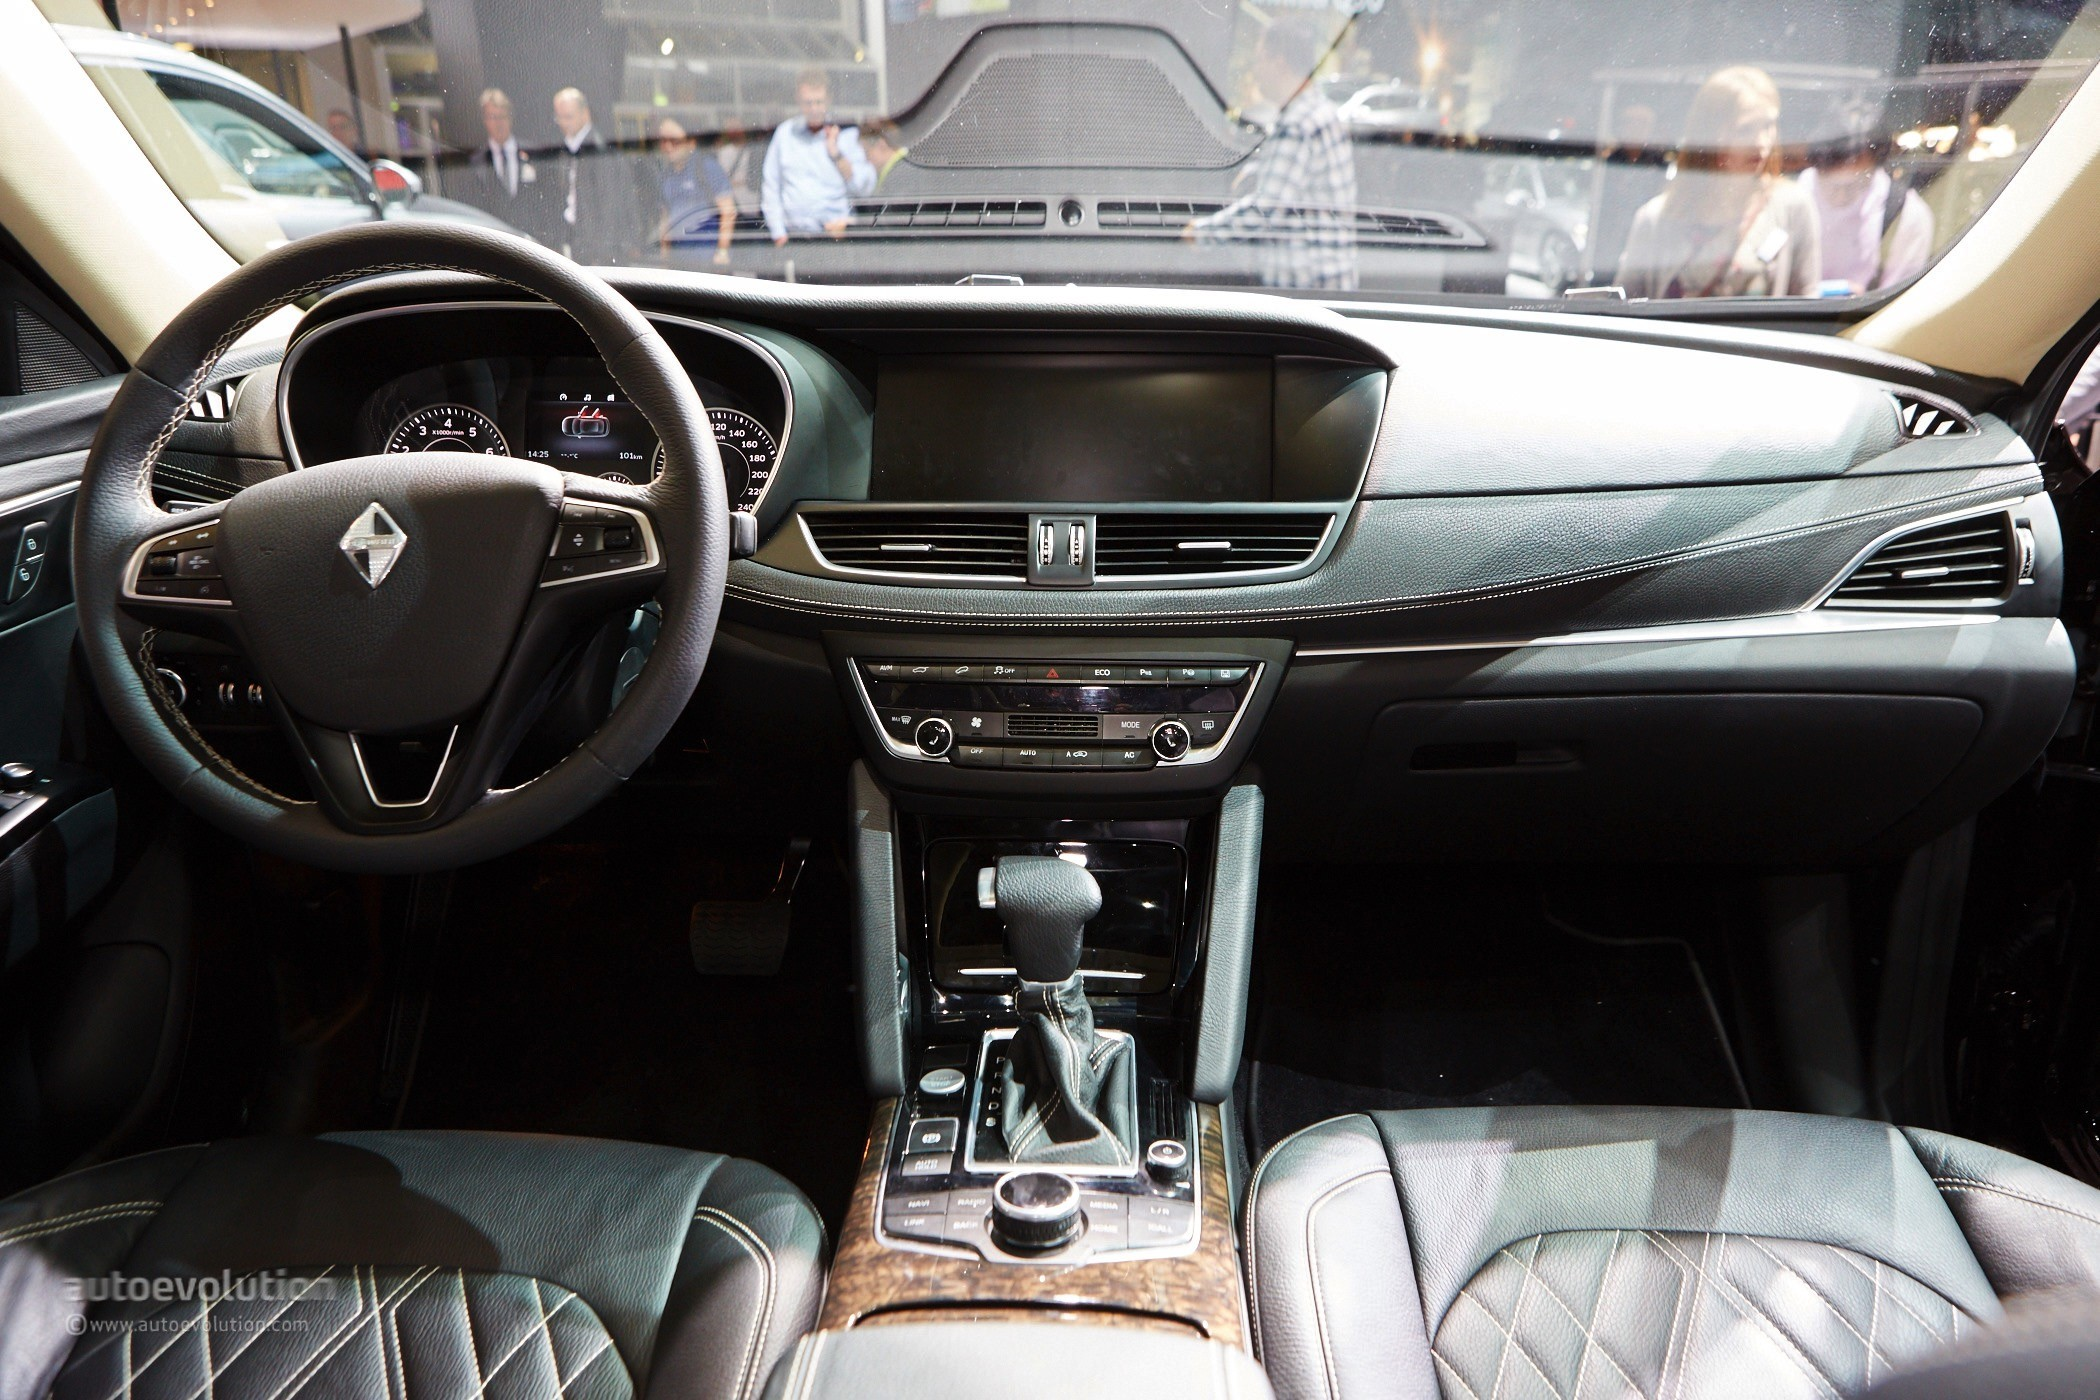 Borgward Is Officially Back with its BX7 SUV in Frankfurt - autoevolution